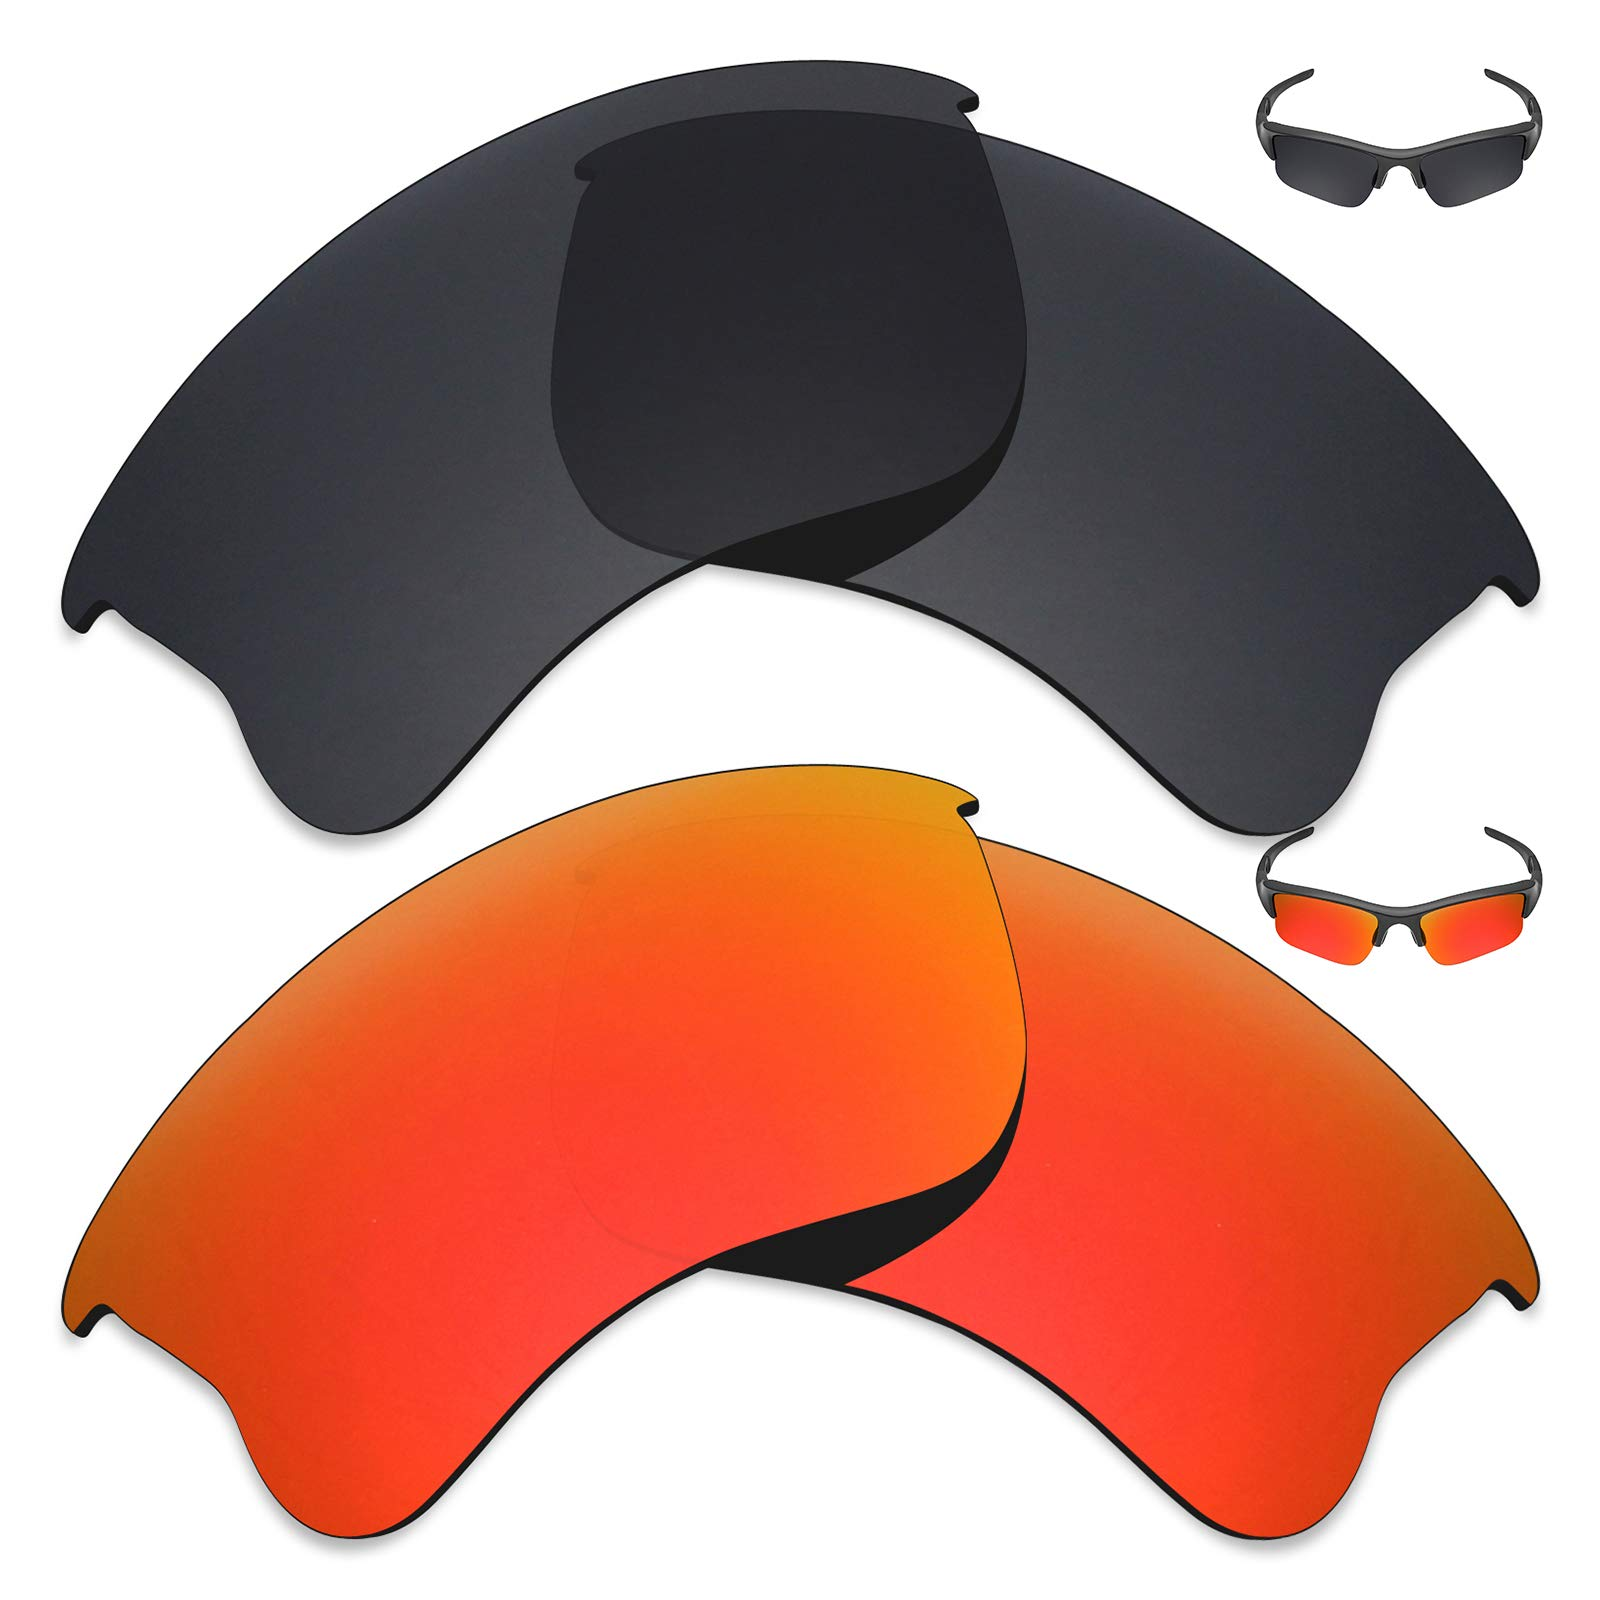 Mryok 2 Pair Polarized Replacement Lenses for Oakley Flak Jacket XLJ Sunglass - Options by Mryok